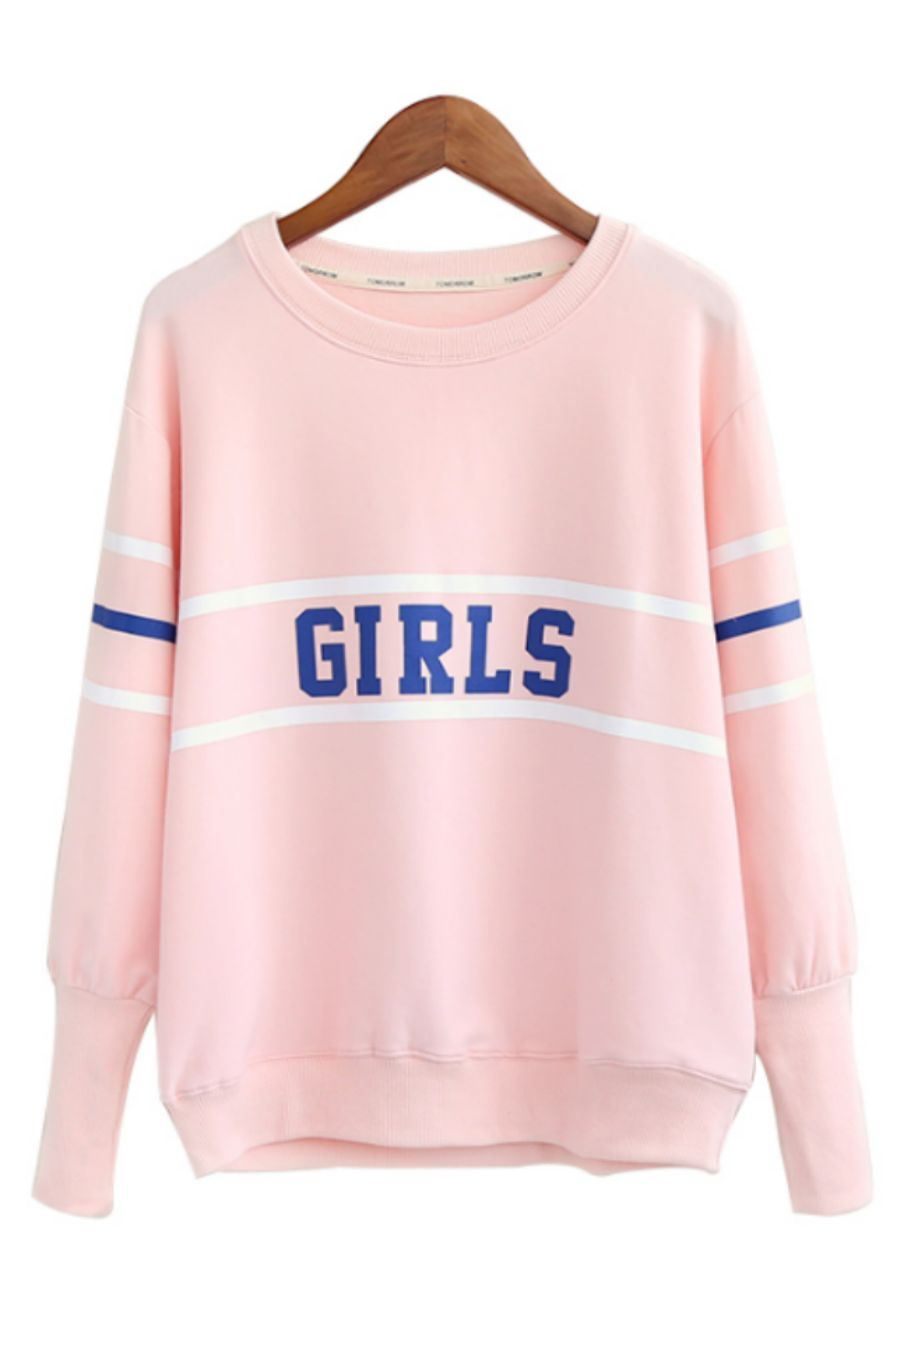 Cute Pink Girls Sweater | clothes | Pinterest | Pink girl, Girls ...